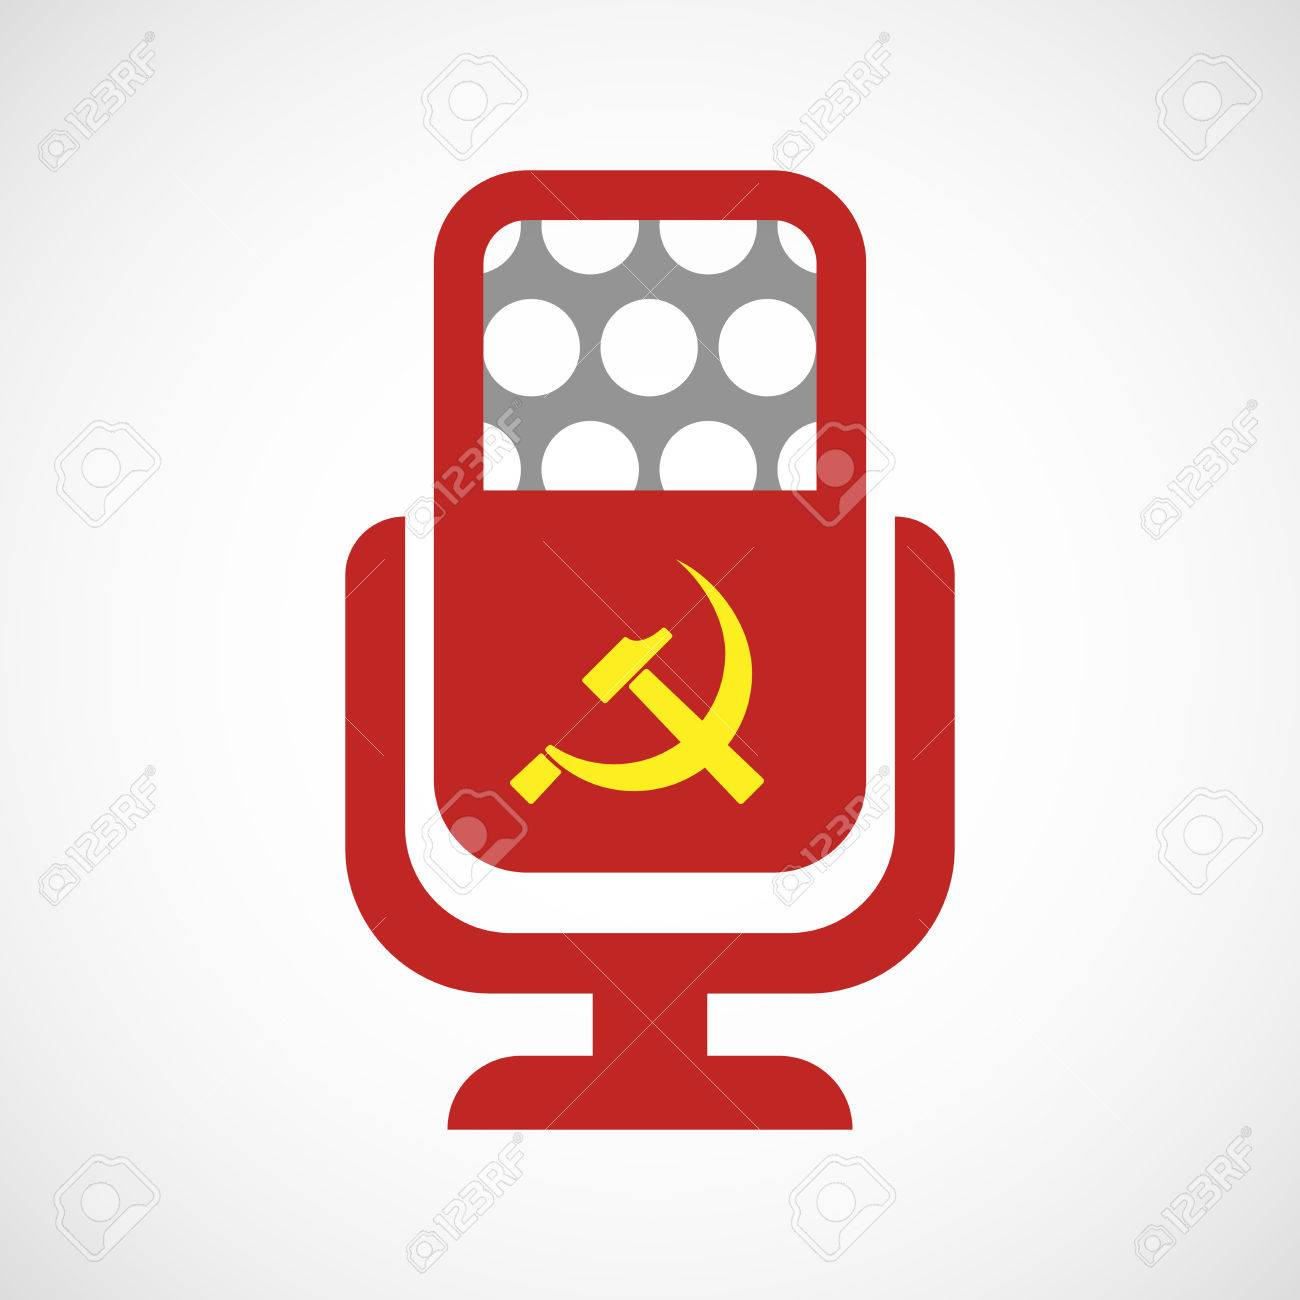 Illustration Of An Isolated Microphone Icon With The Communist